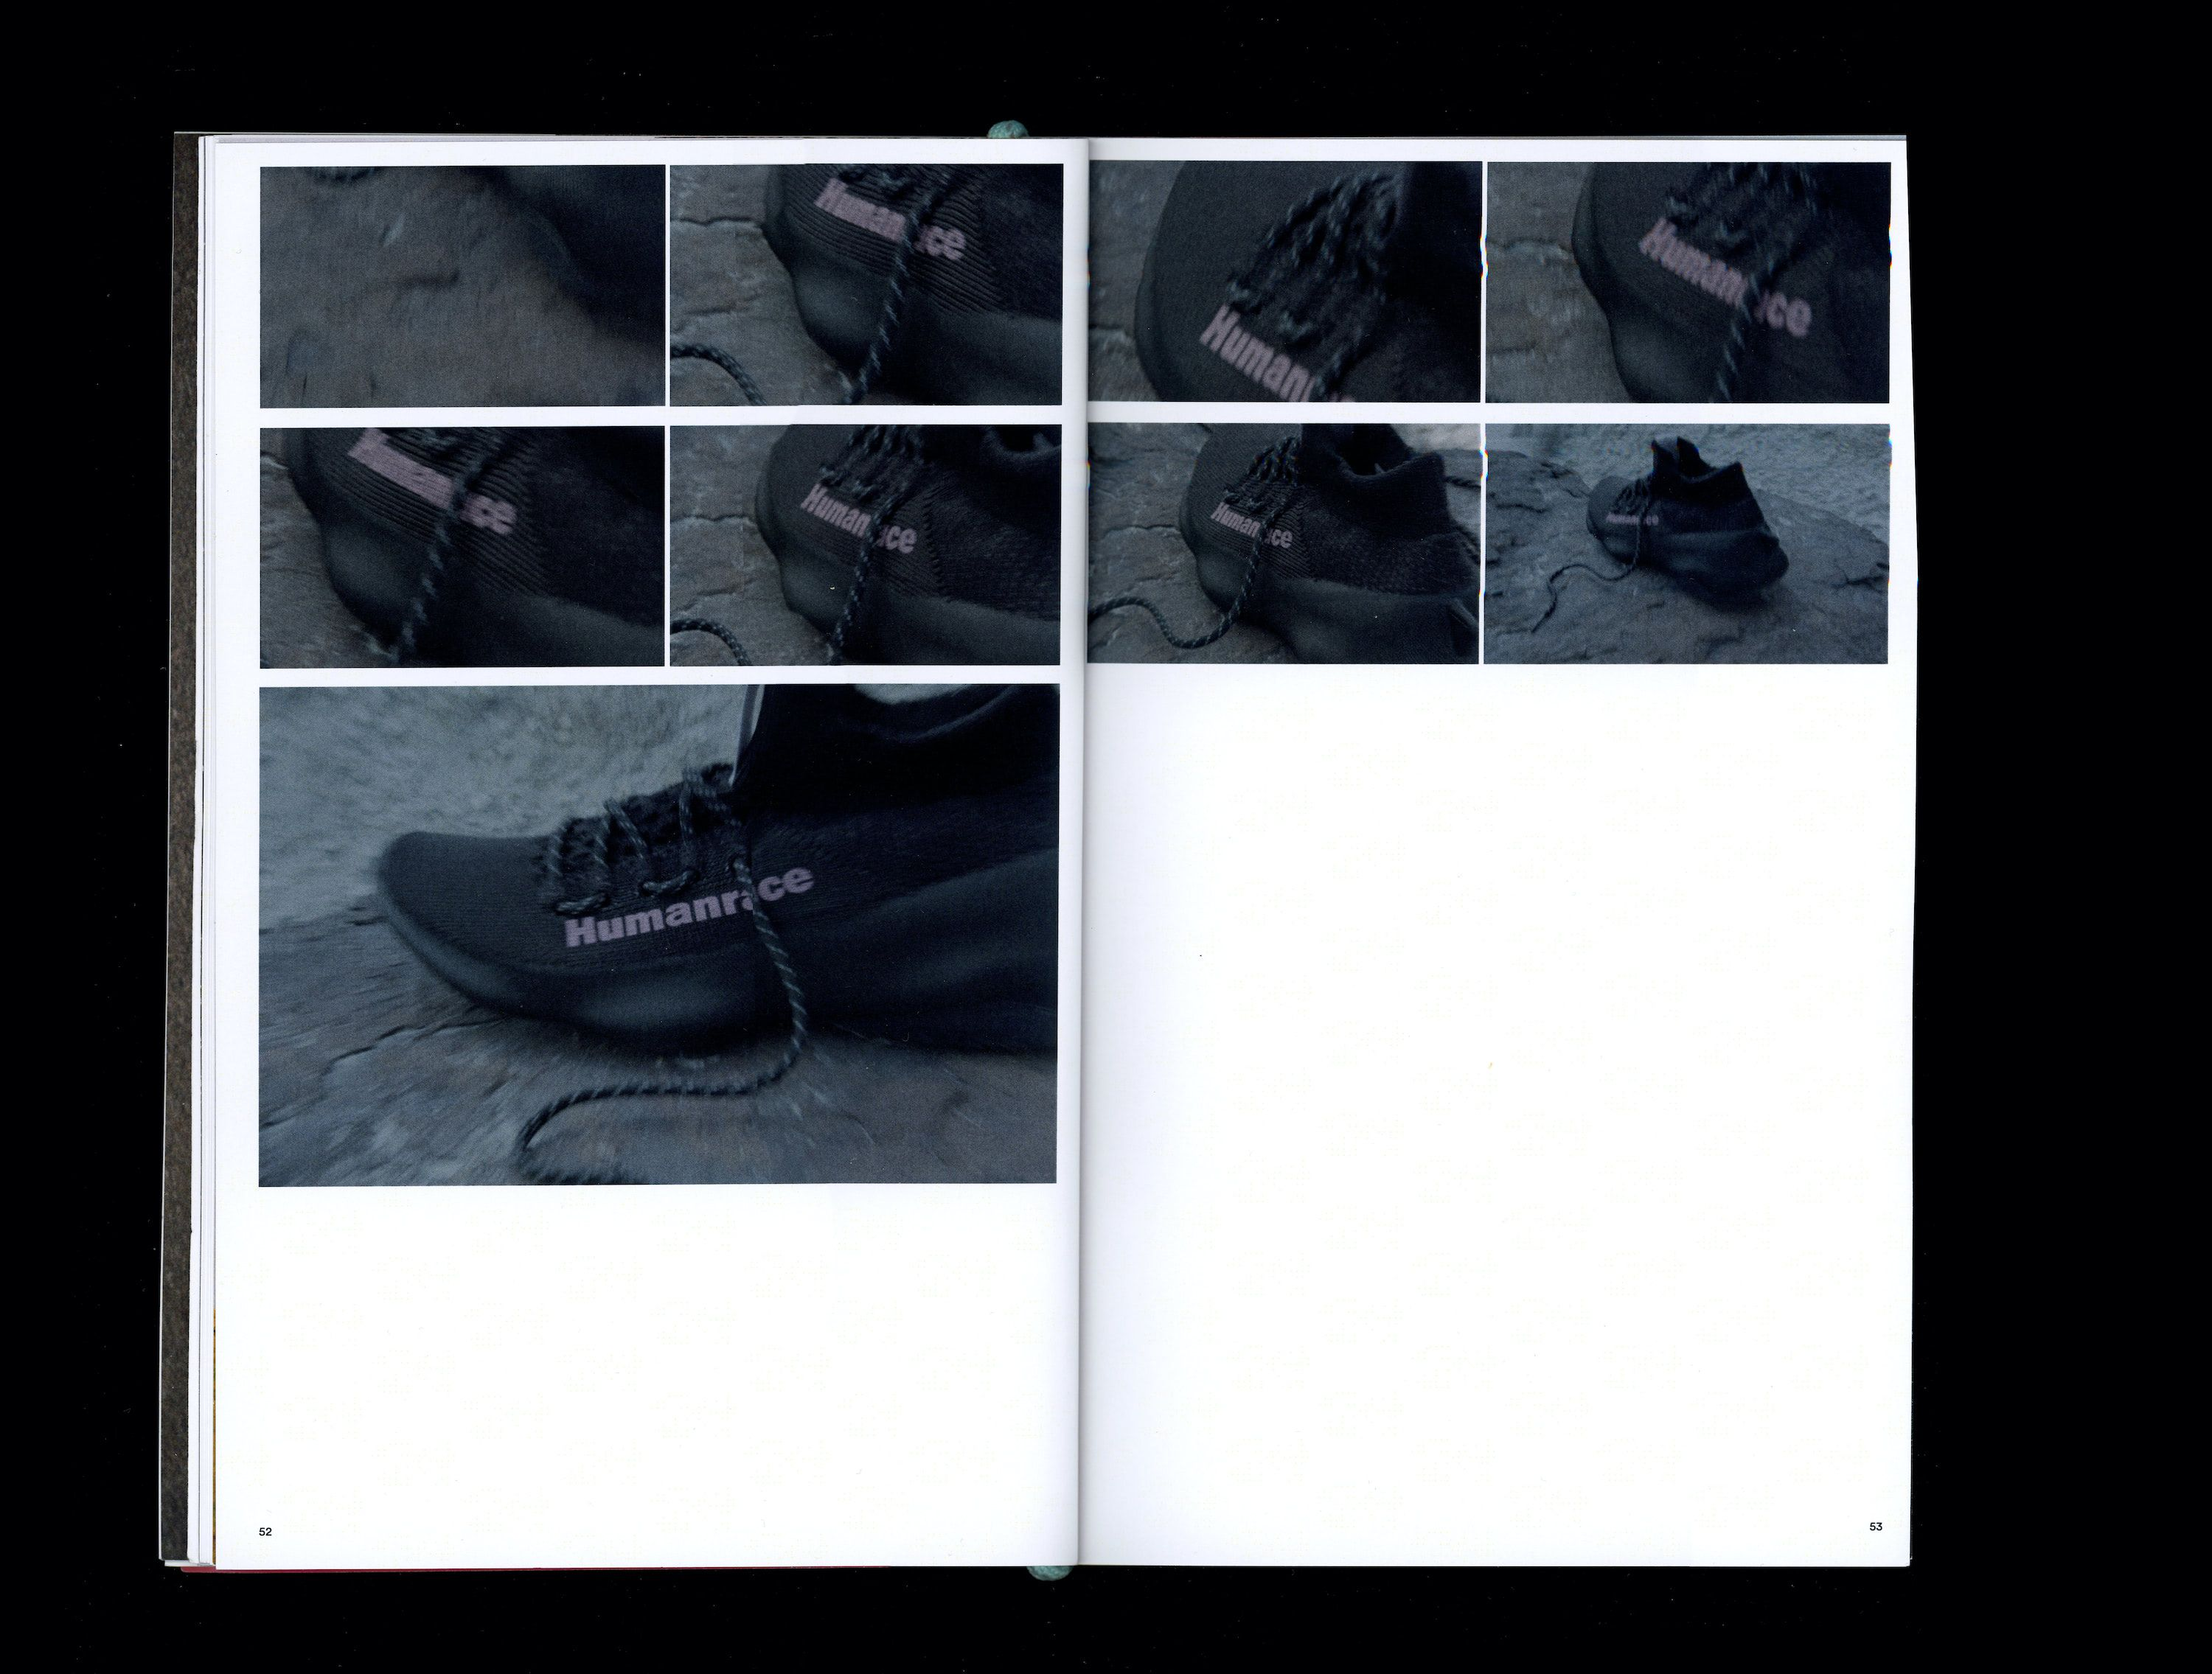 Sequence of photographs in book of black Sičhona show